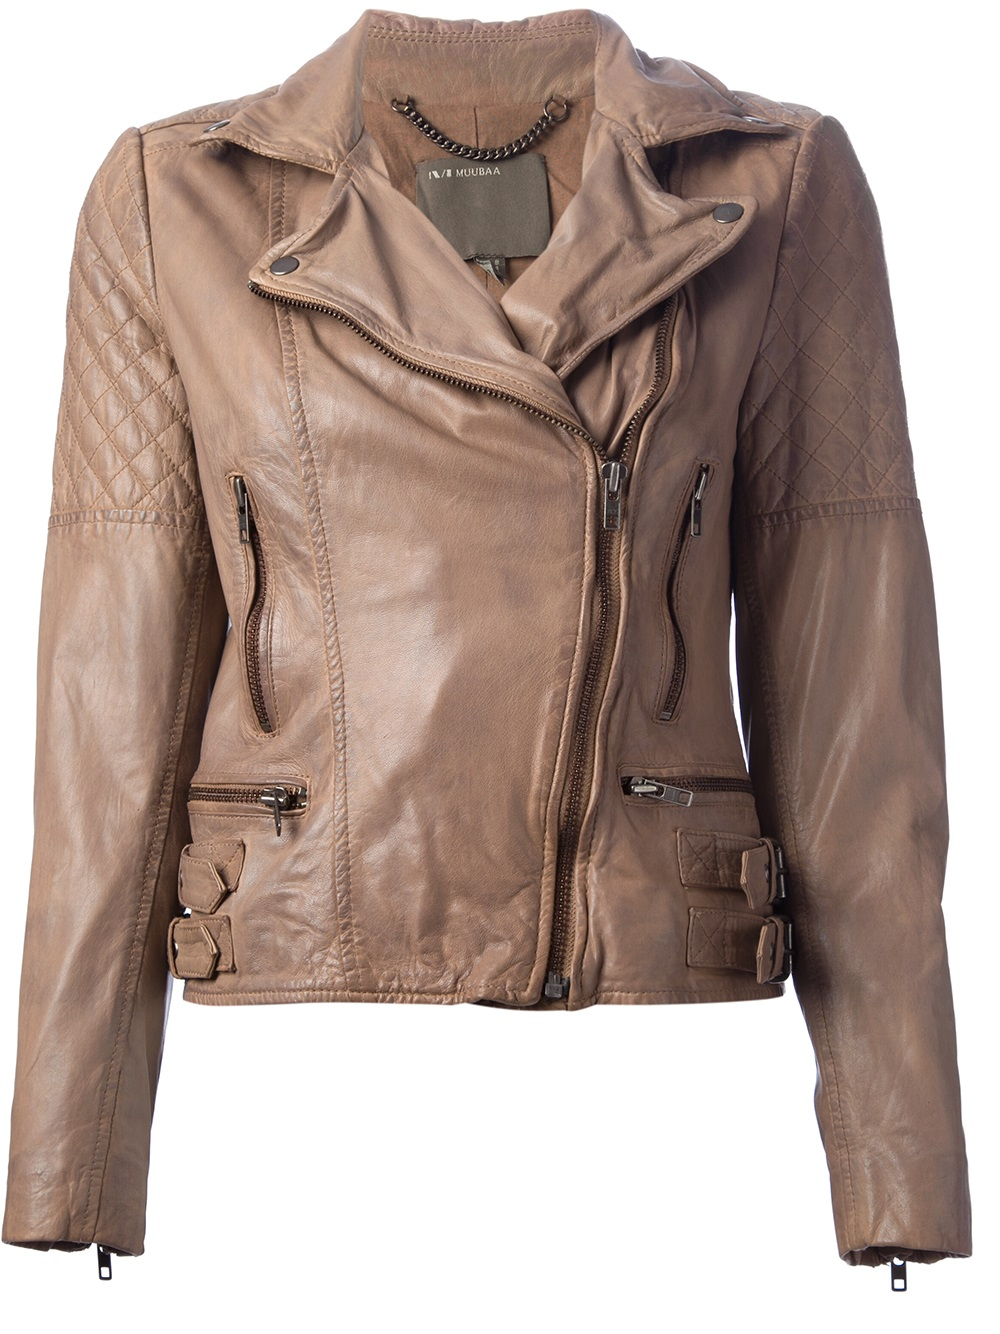 1a2a894357cb2a Muubaa Leather Jacket in Brown - Lyst